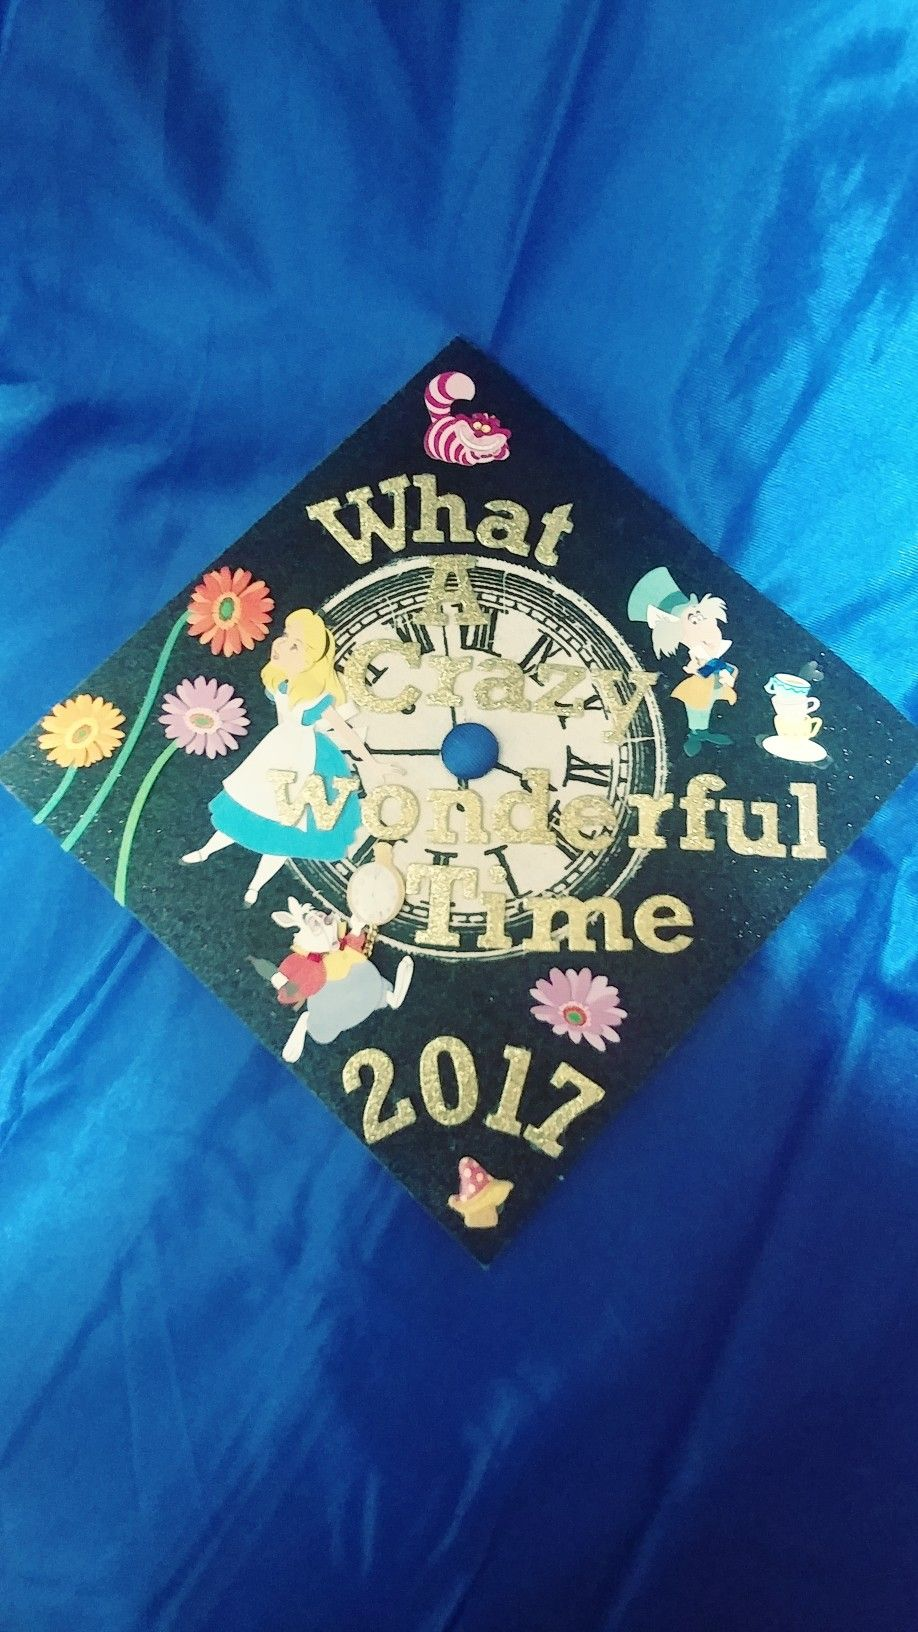 Class Of 2017 My Graduation Cap Alice In Wonderland Theme